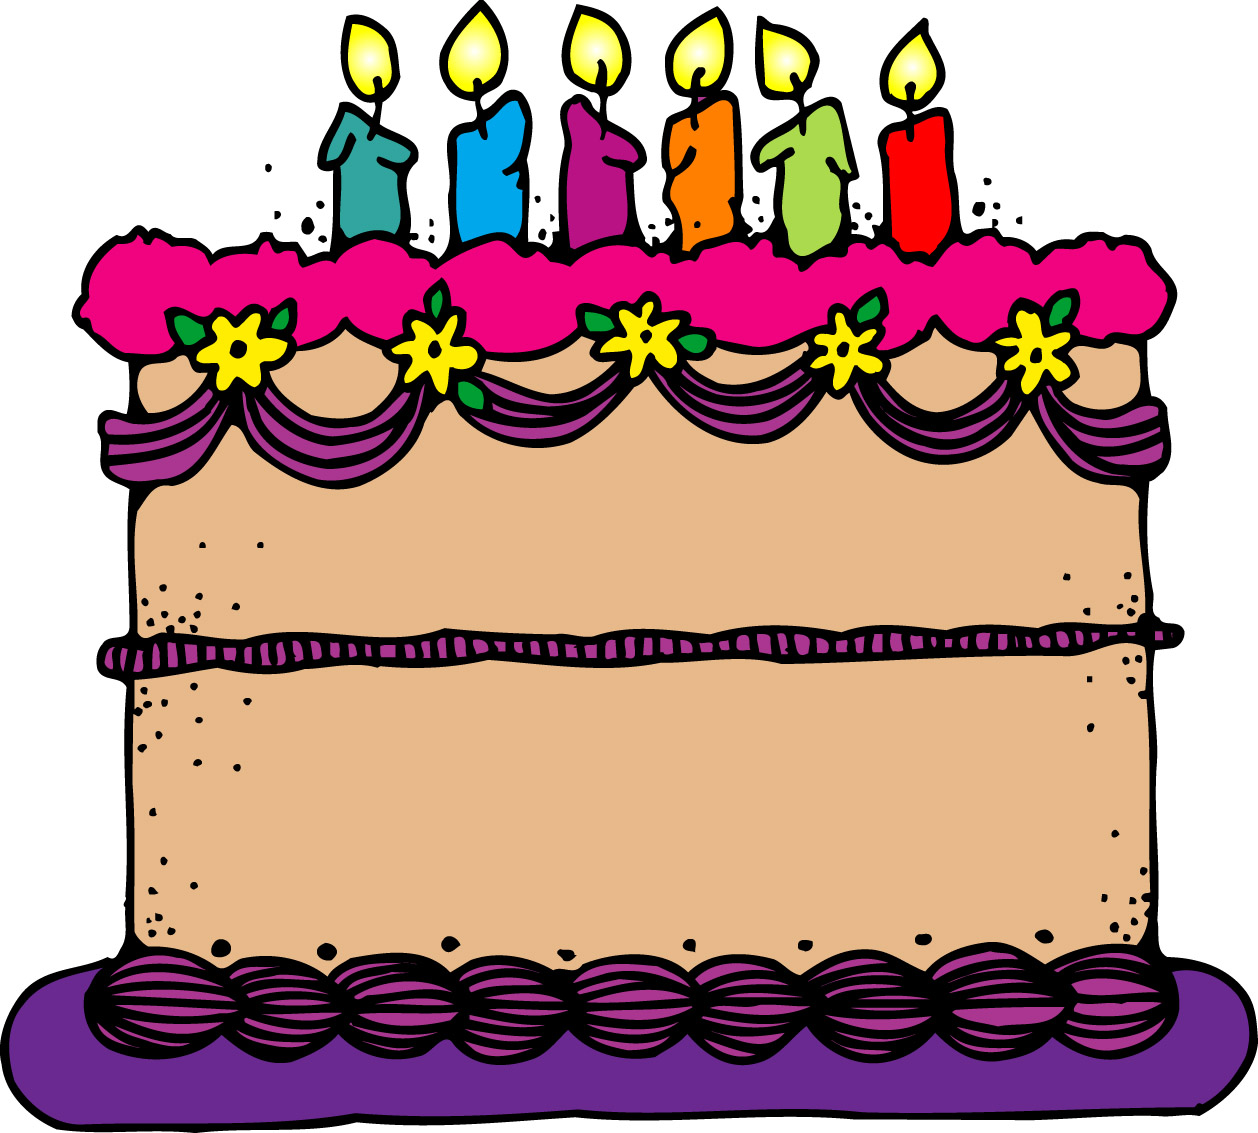 Birthday cake clip art free . - Birthday Cake Clipart